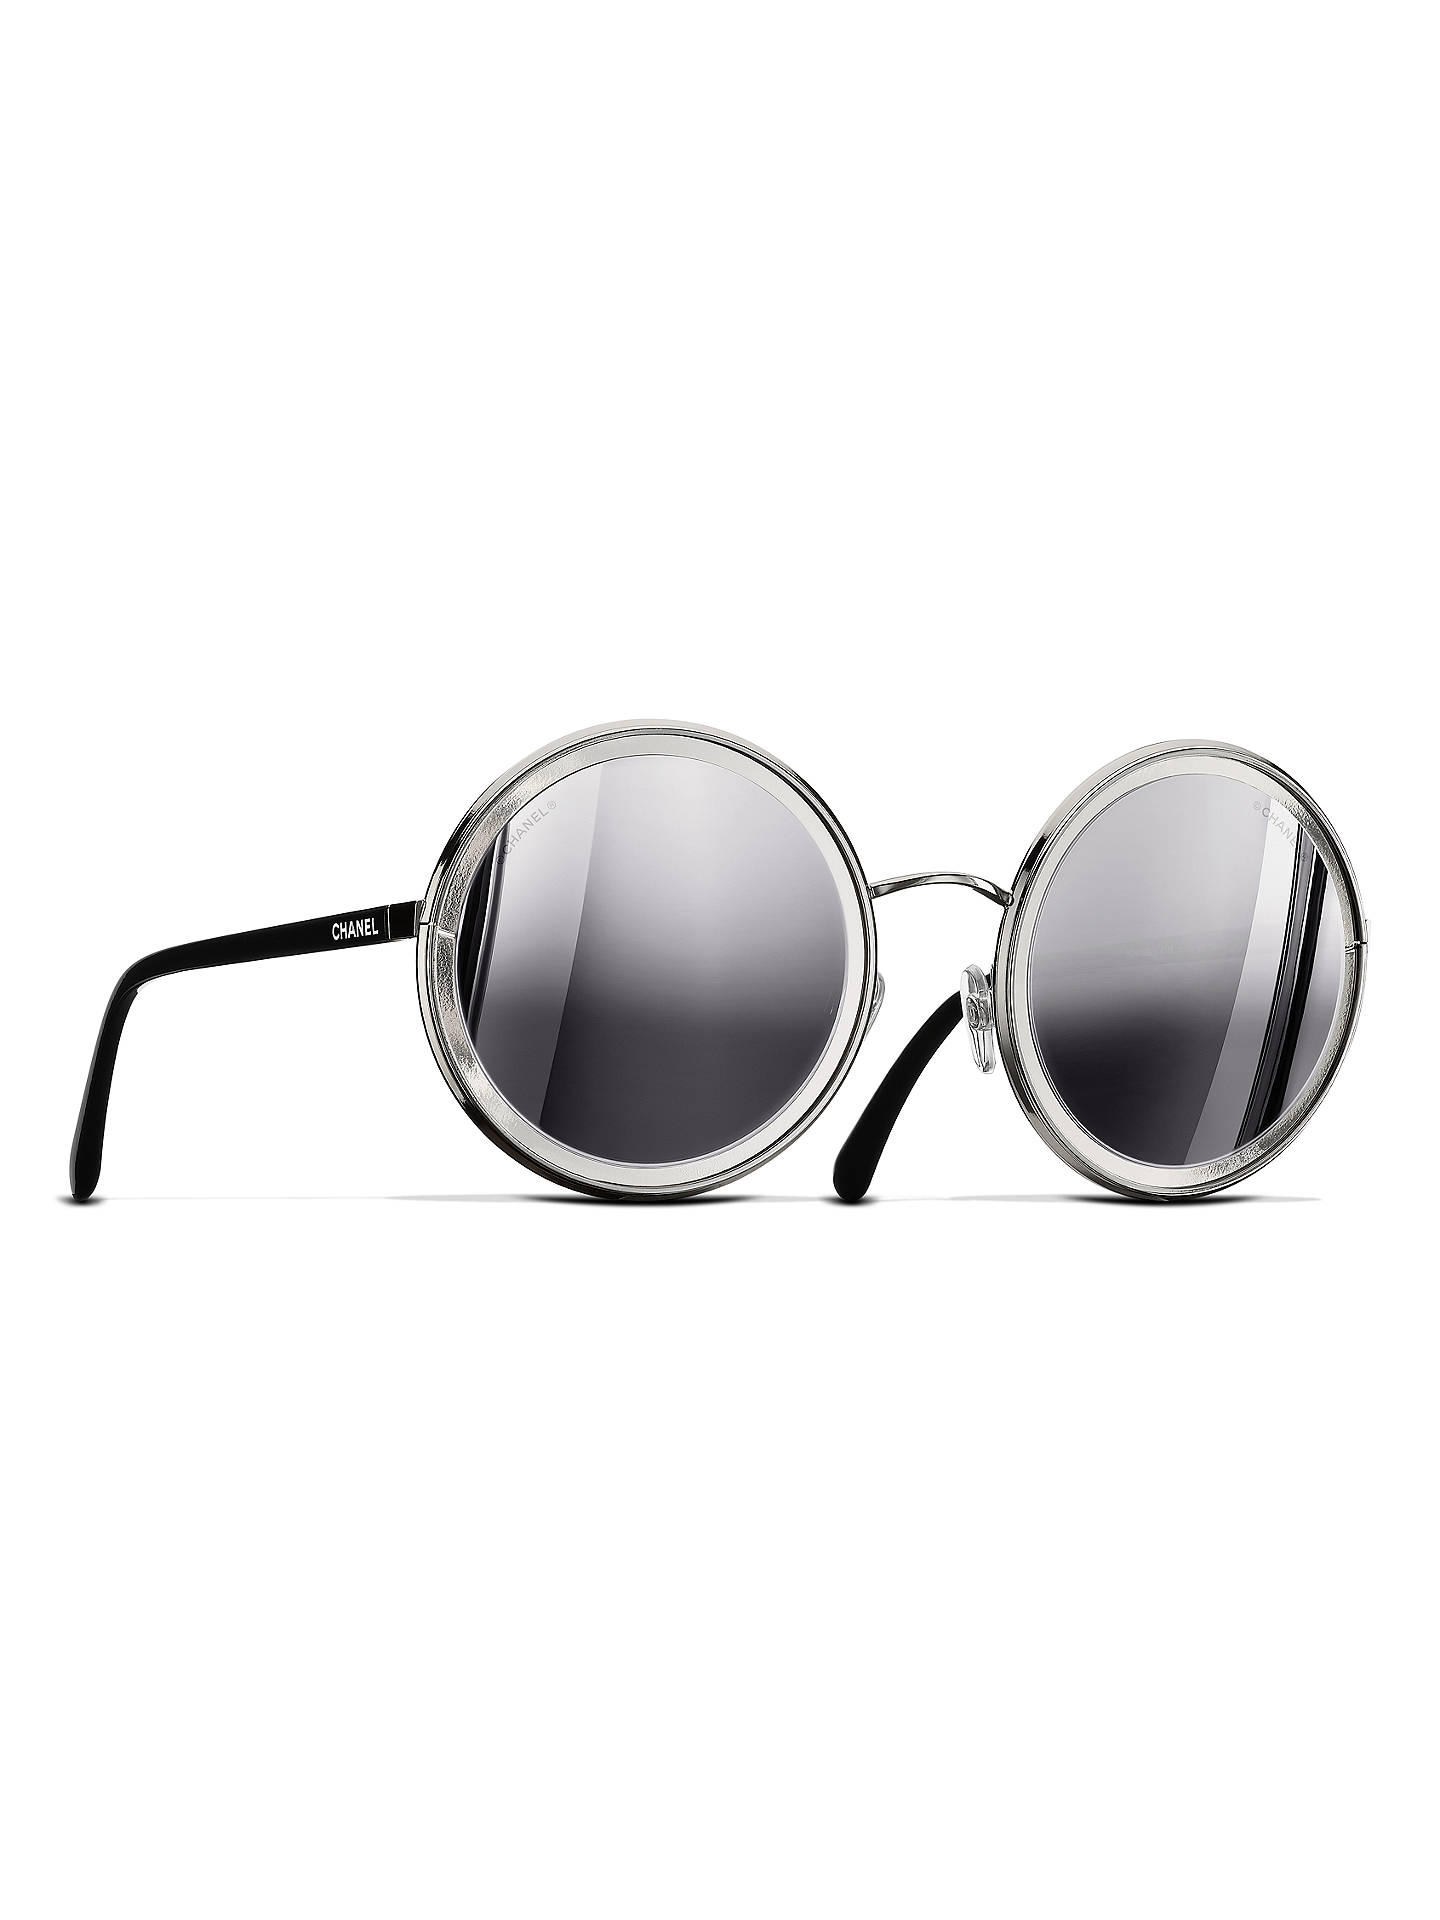 1dcbef6e9135 Buy CHANEL Round Sunglasses CH4226 Silver Online at johnlewis.com ...